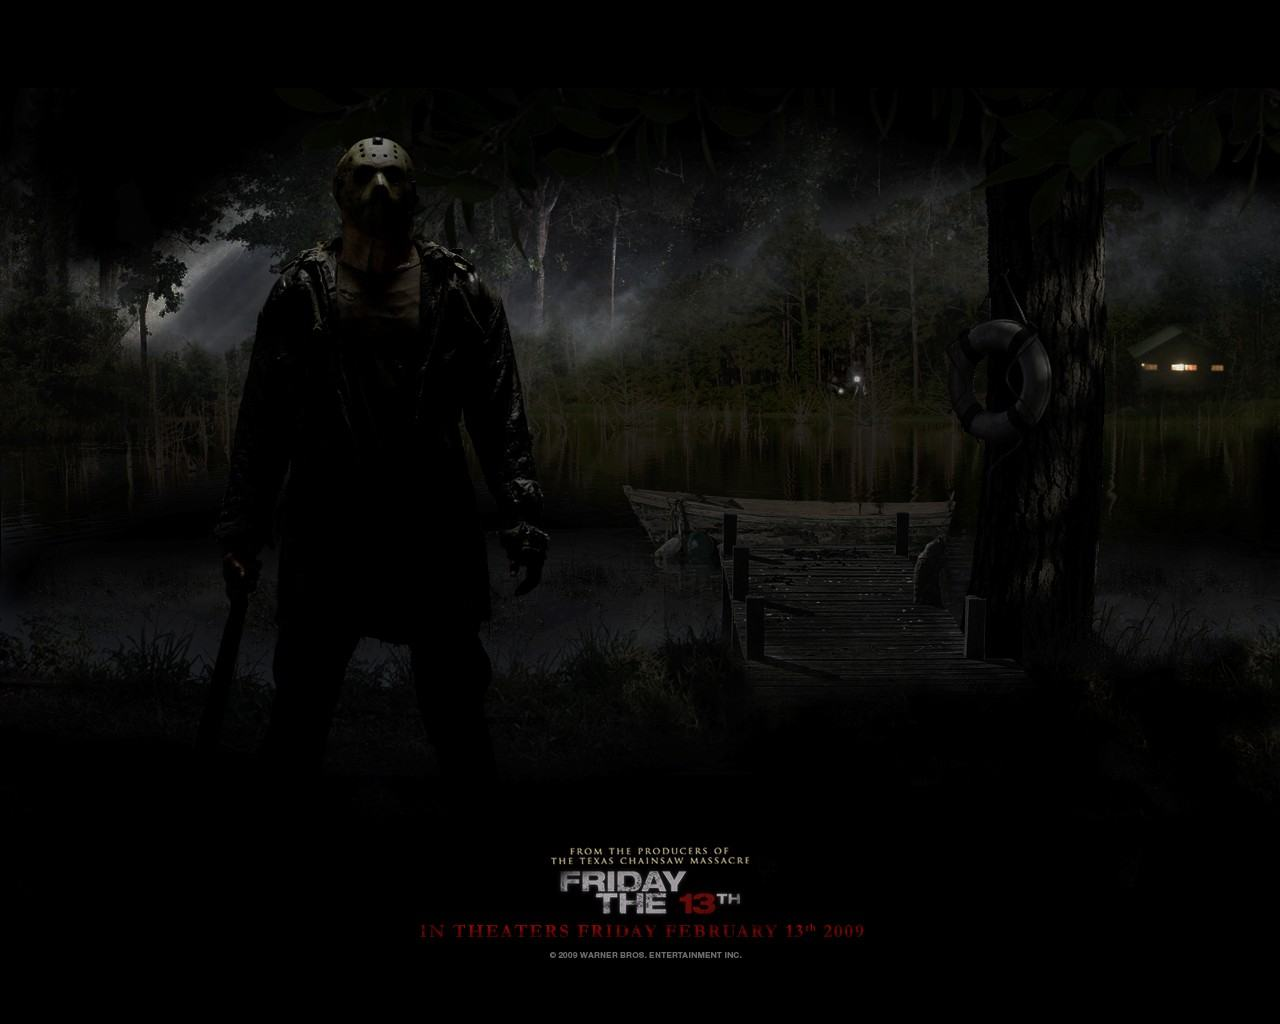 Обои Friday the 13th 1280x1024